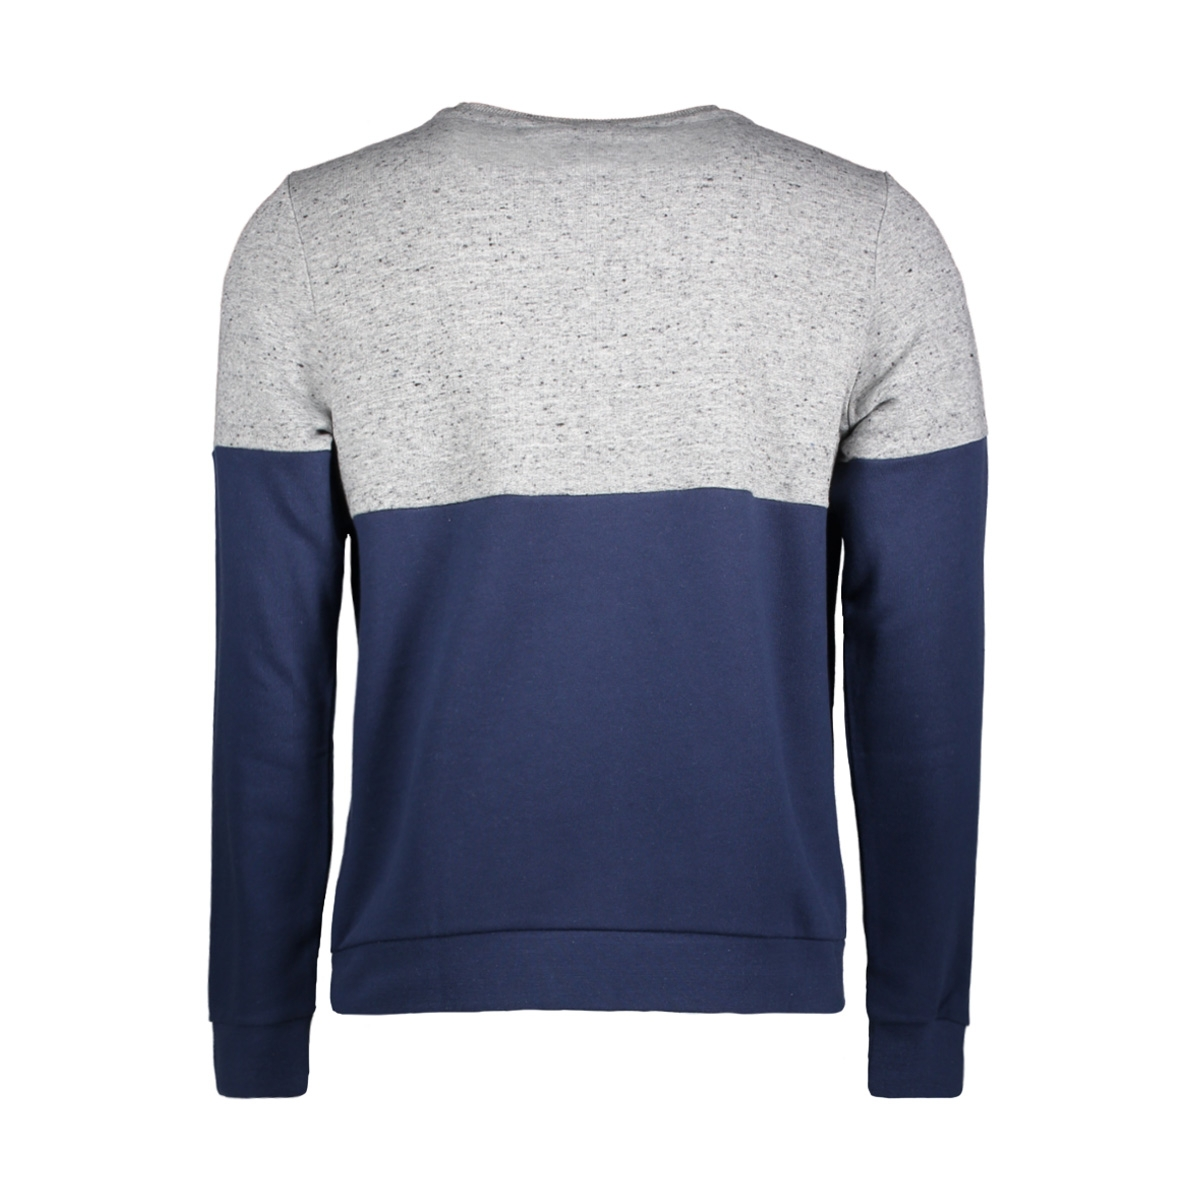 msw751452 twinlife sweater 8051